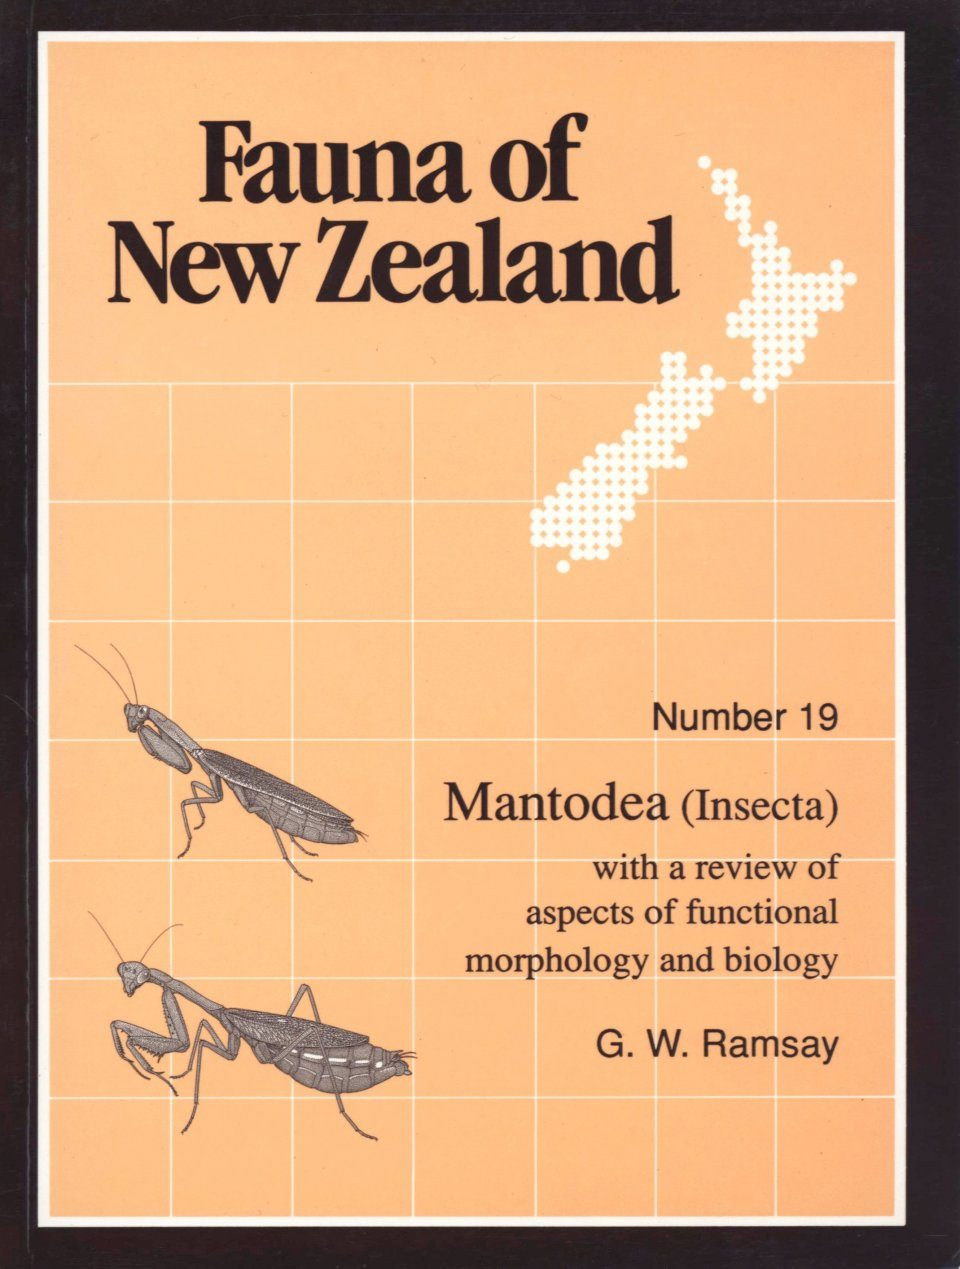 Fauna of New Zealand, No 19: Mantodea (Insecta)